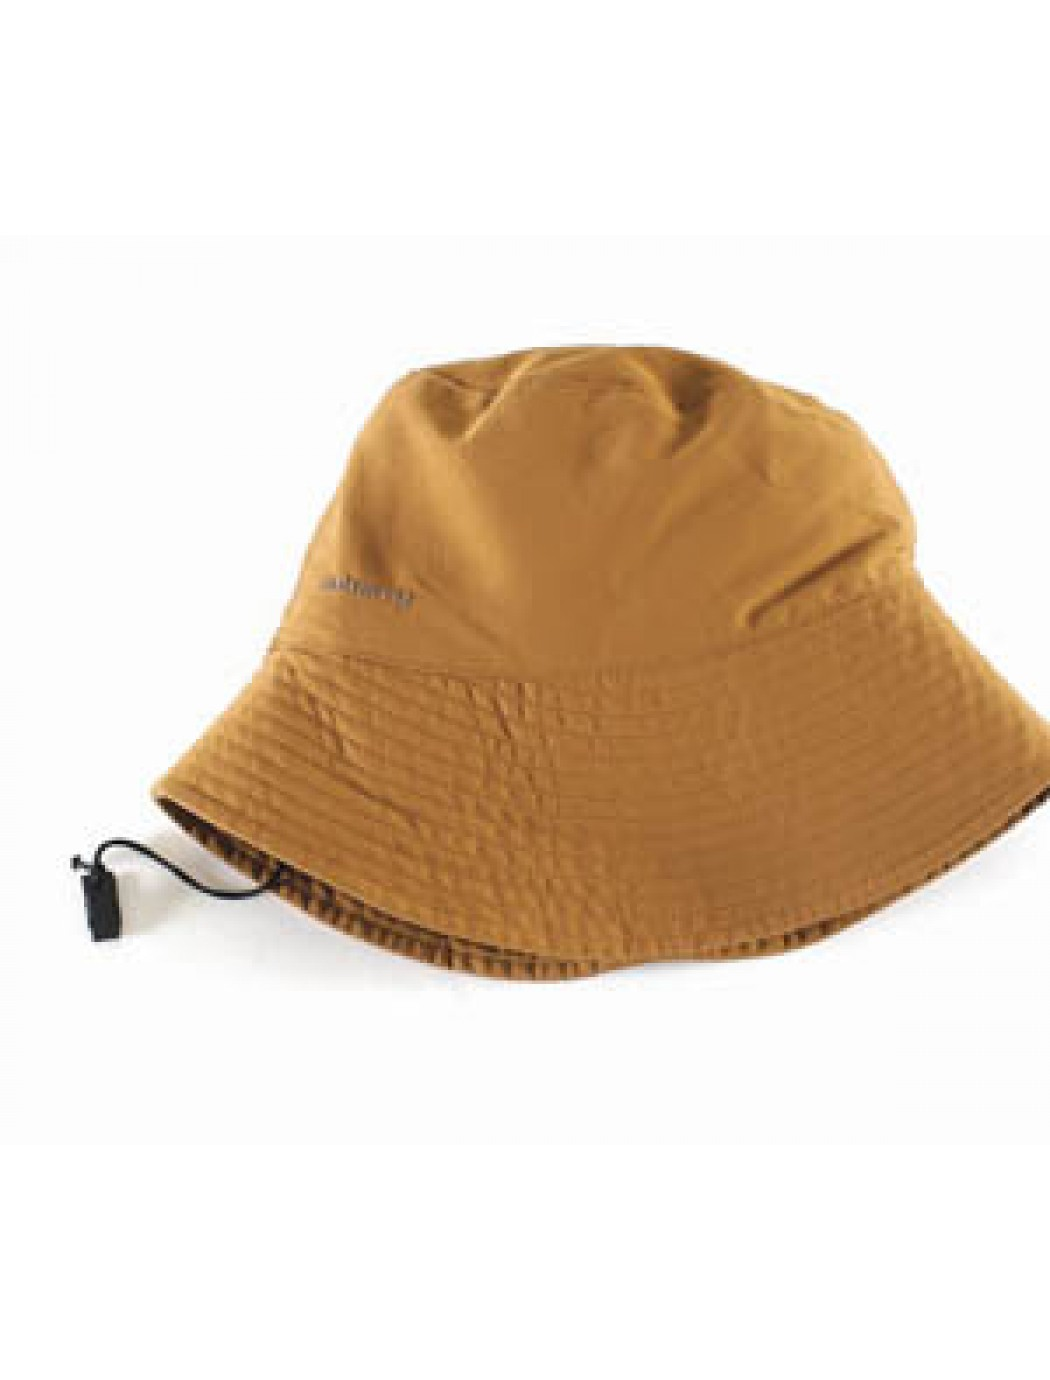 athy-hat-autumn-gold